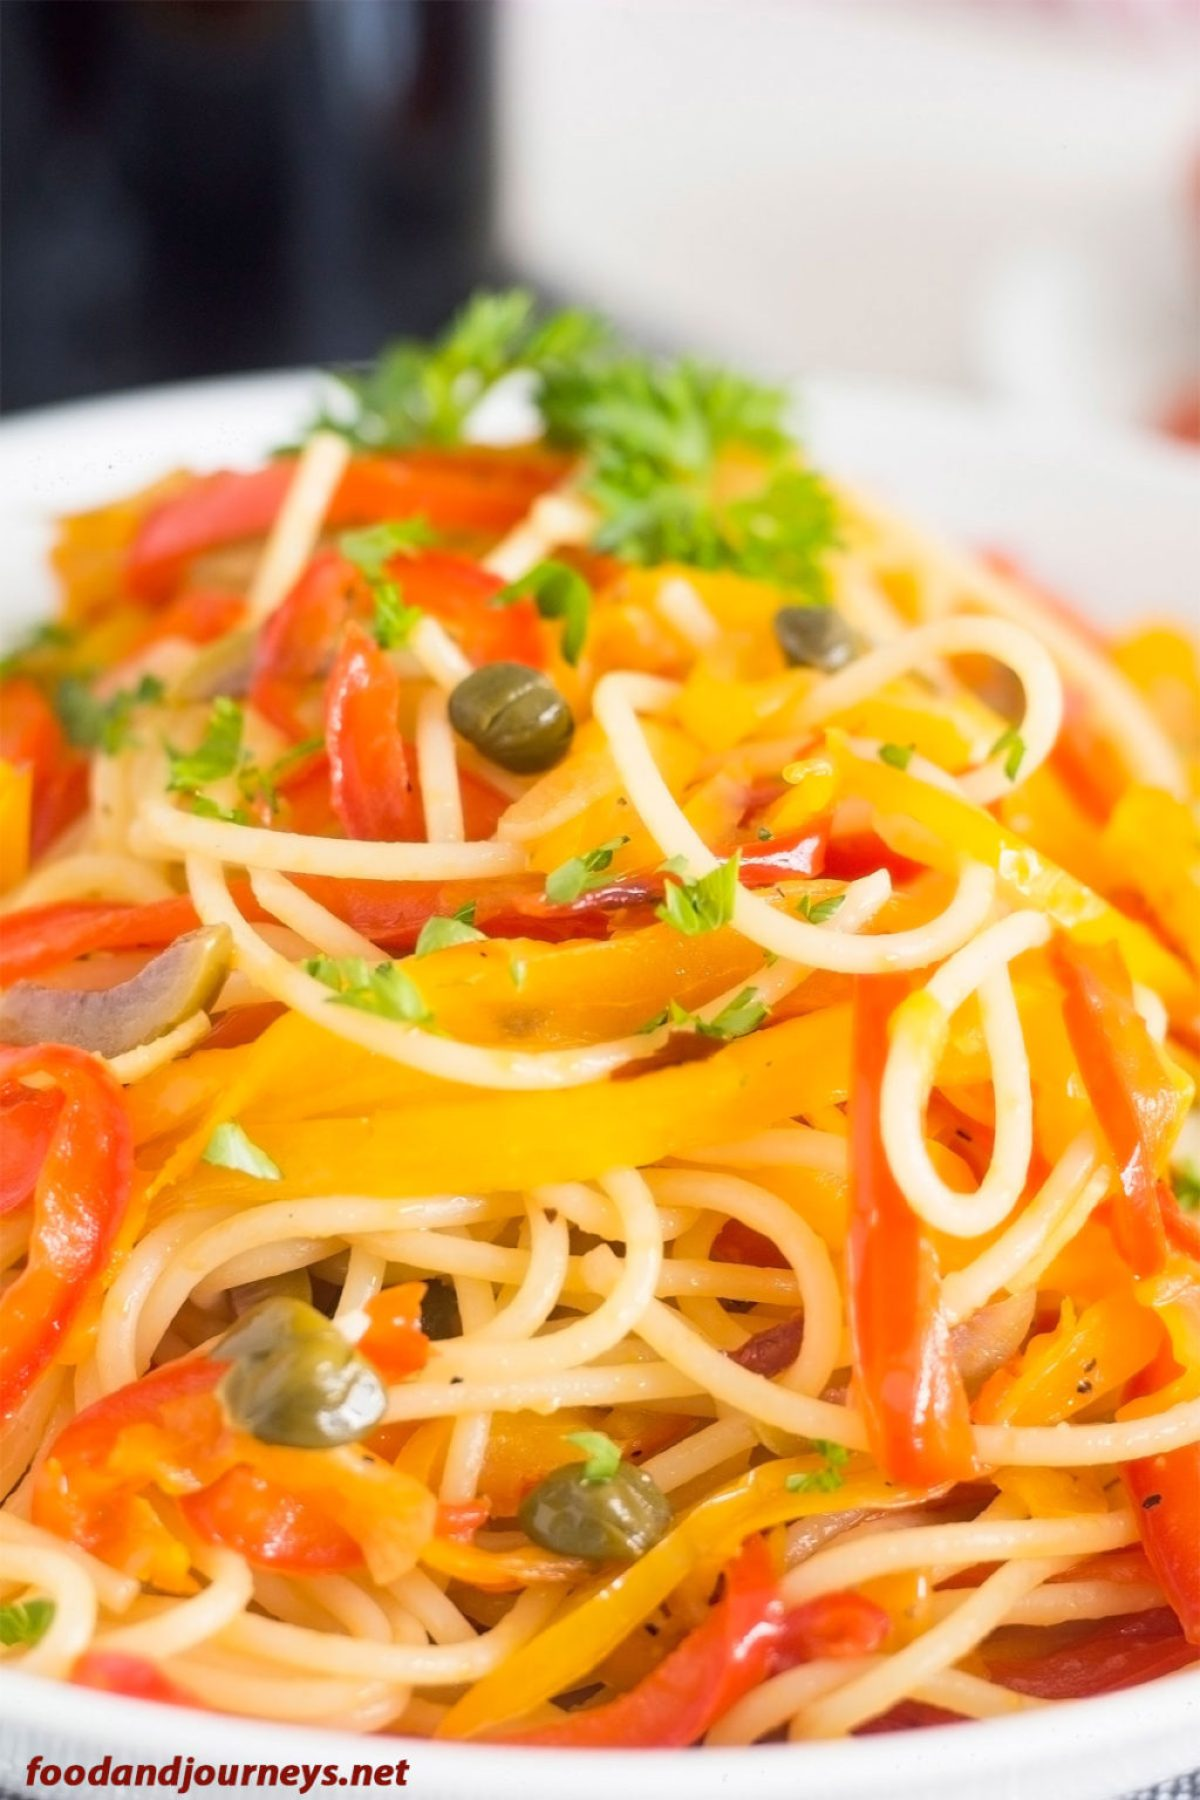 Spaghetti with Fried Peppers pic1|foodandjourneys.net